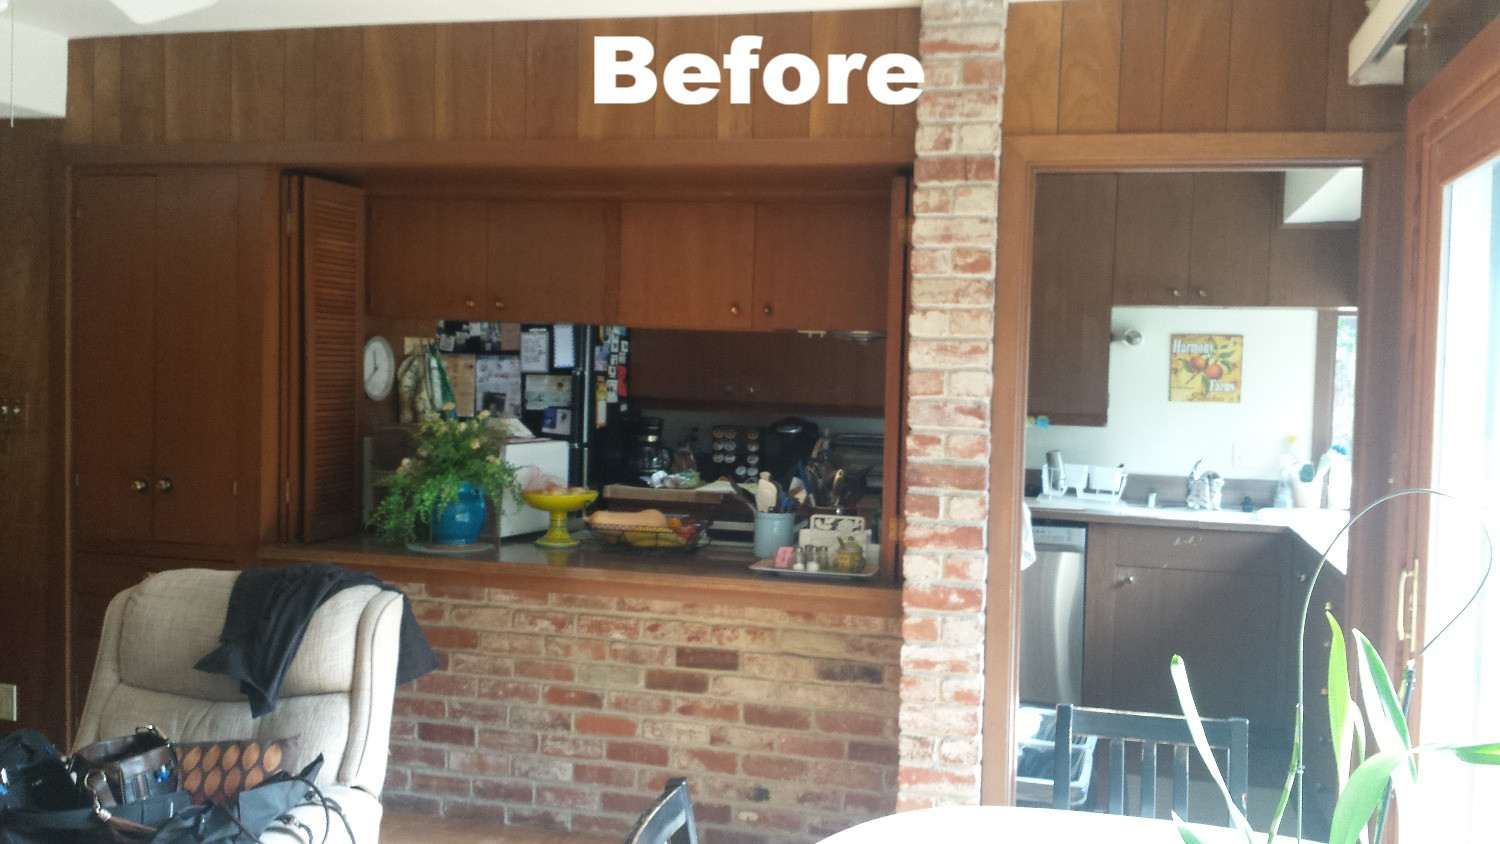 Overcoming Kitchen Remodel Anxiety